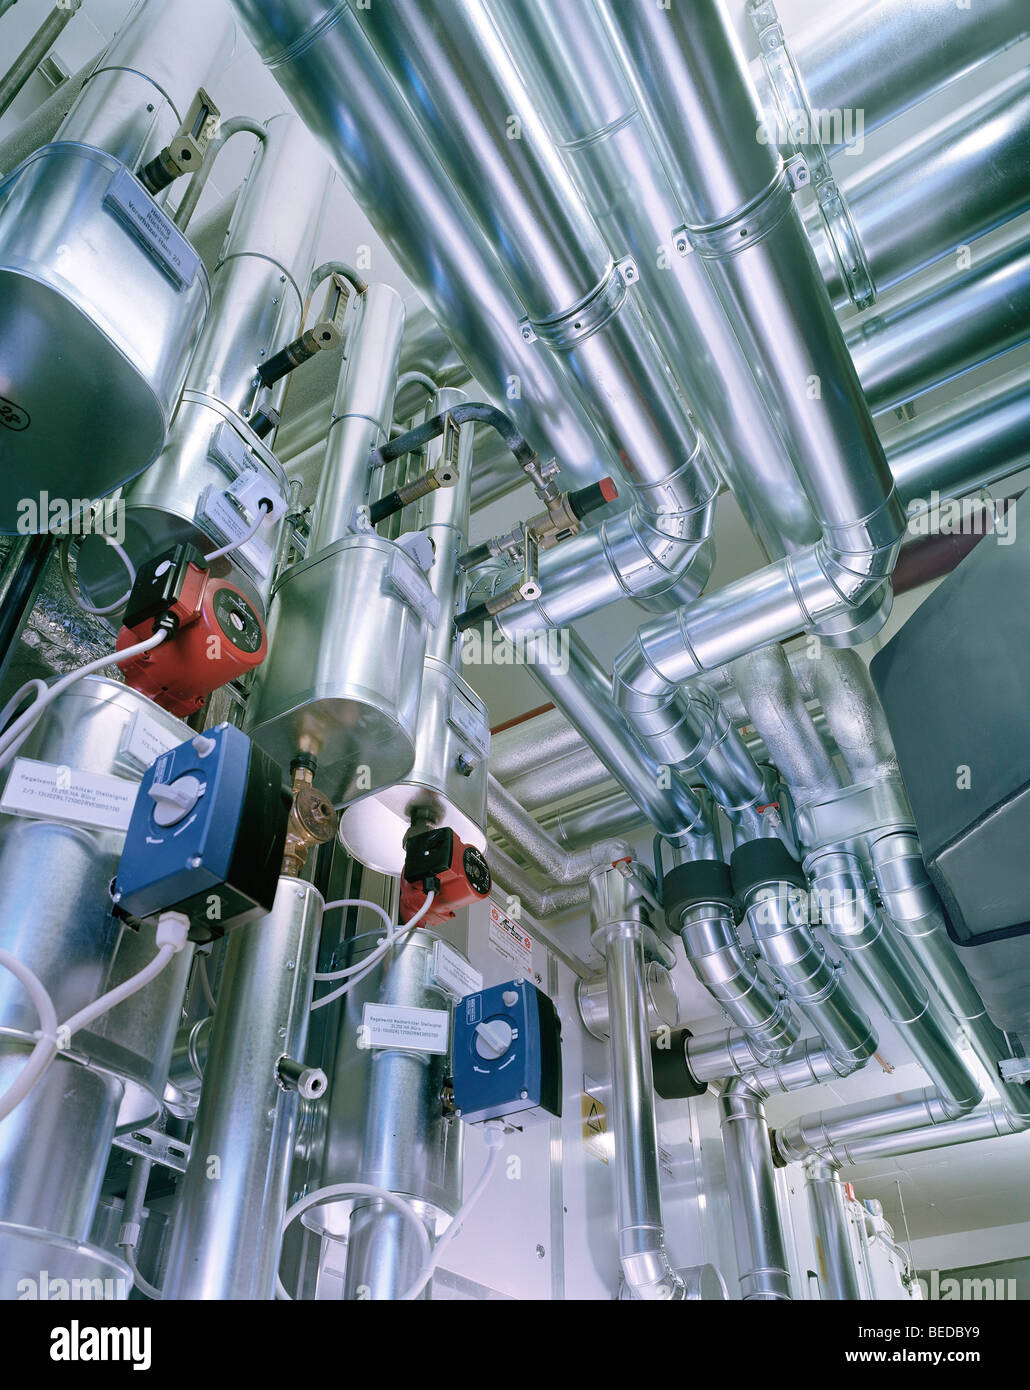 Heating technology and ventilation engineering - Stock Image